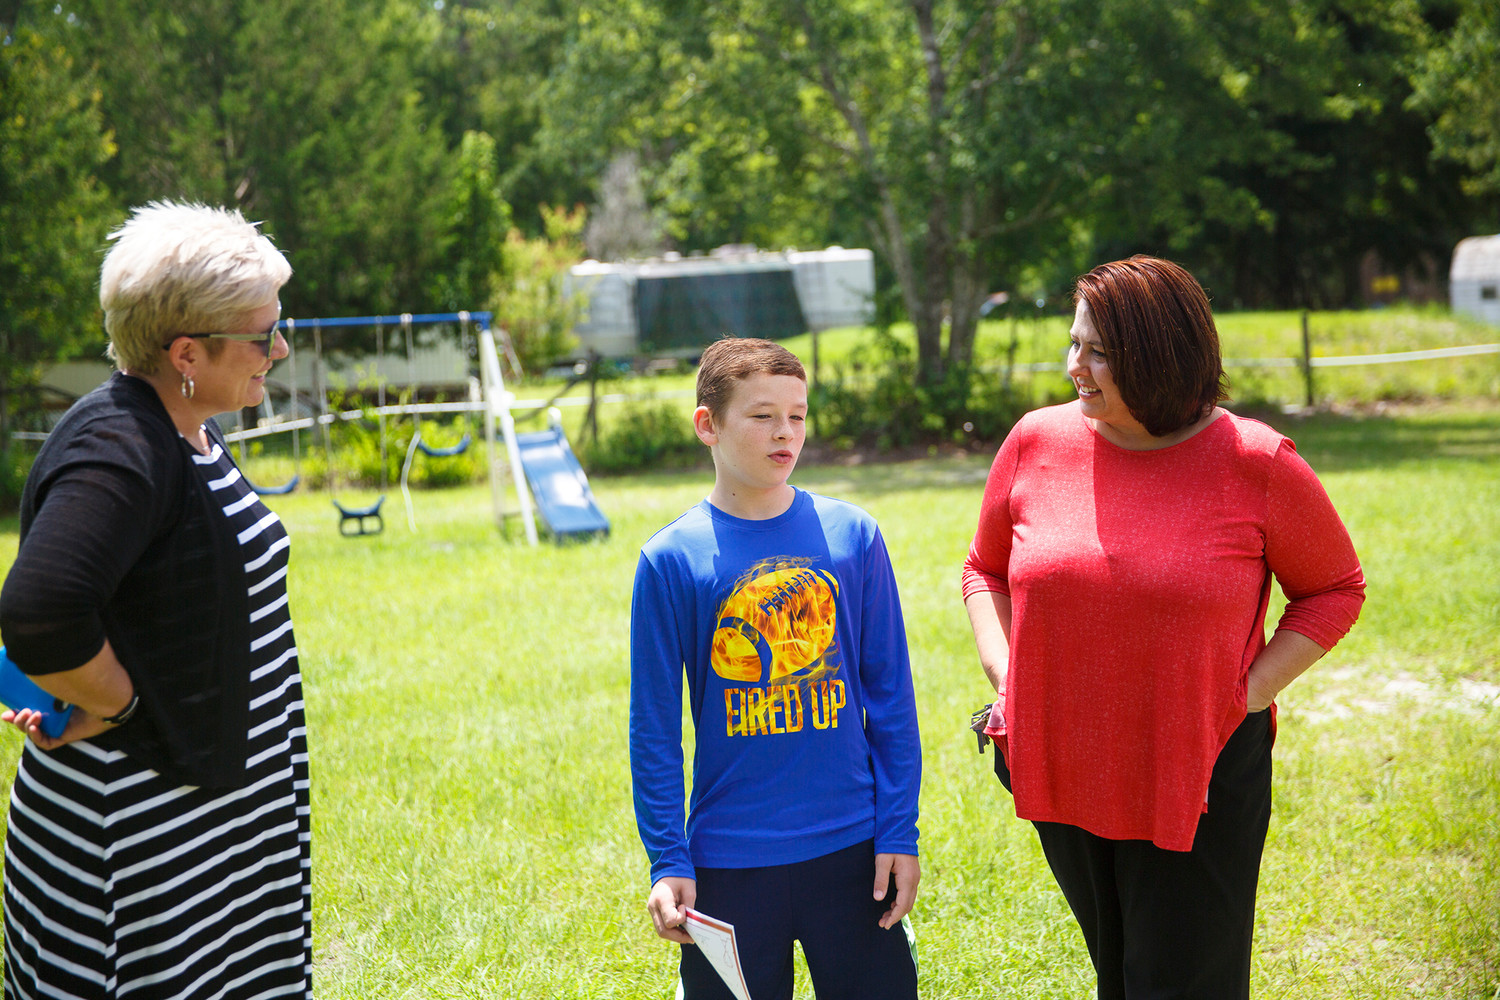 Wilkinson Elementary School Assistant Principal Carolyn Hayward, left, and Principal Heather Teto, right, talk with Jessie Kelley Jr., 10, Monday after visiting him at home to deliver a sign identifying him as one of the two top readers in the fourth grade class.